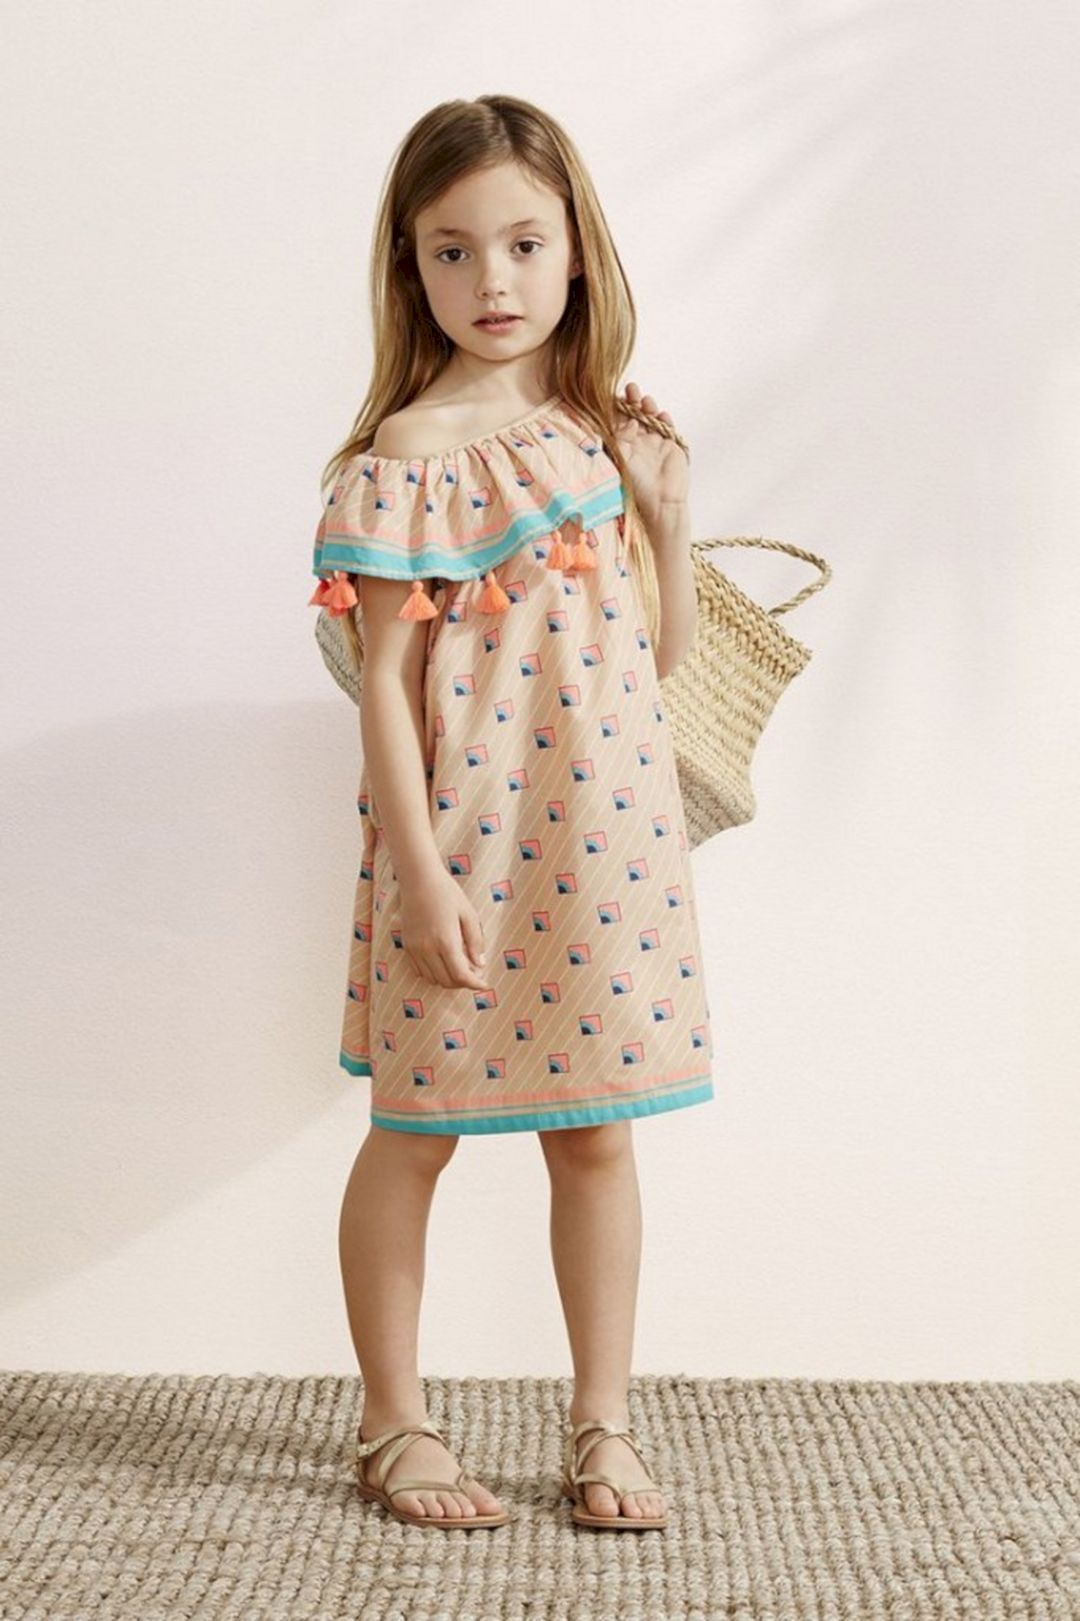 c894f92b895 Cozy Chic 20 Kids Summer Outfits Ideas http   uniqlog.com chic